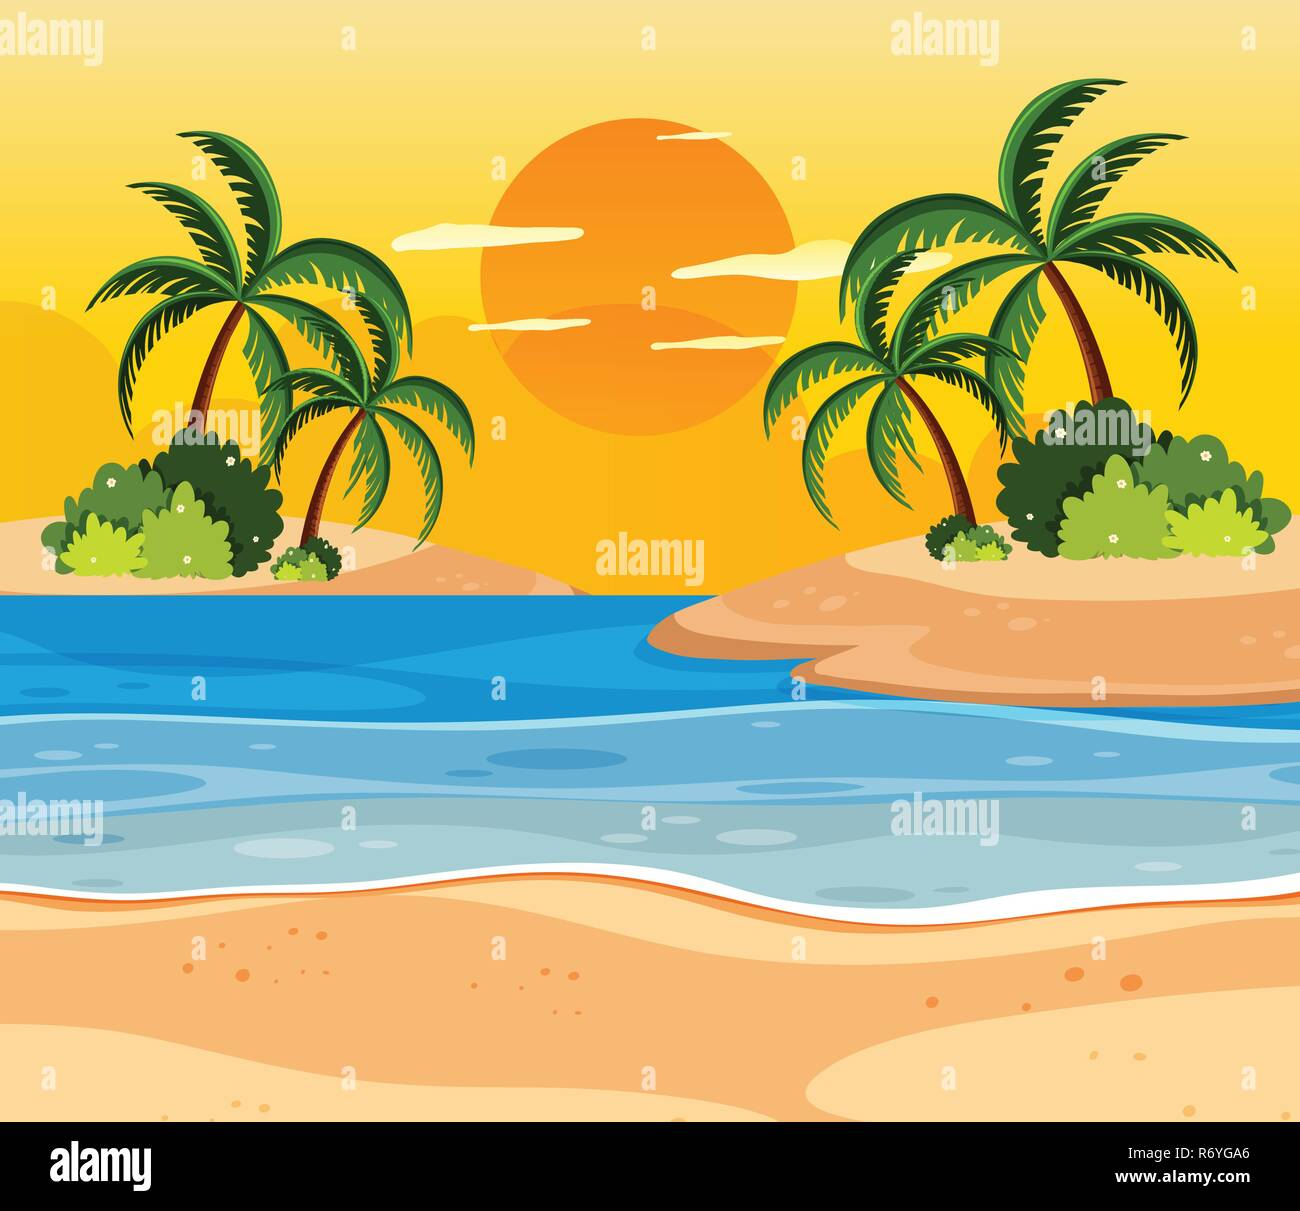 Sunset over tropical islands illustration - Stock Vector